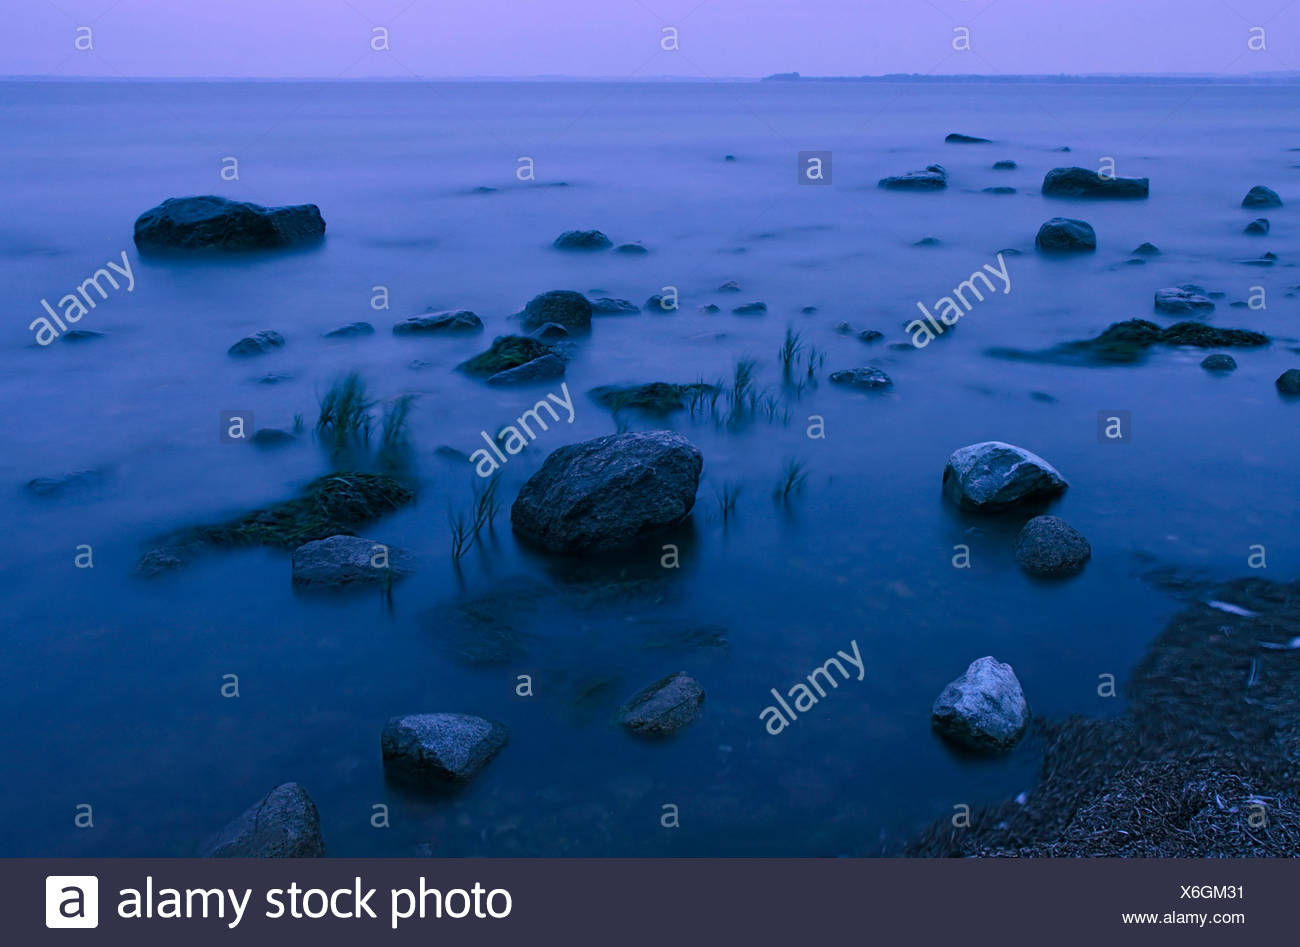 Blue hour on the beach of the Baltic Sea, long exposure, Poel island, Mecklenburg-Western Pomerania, Germany, Europe - Stock Image